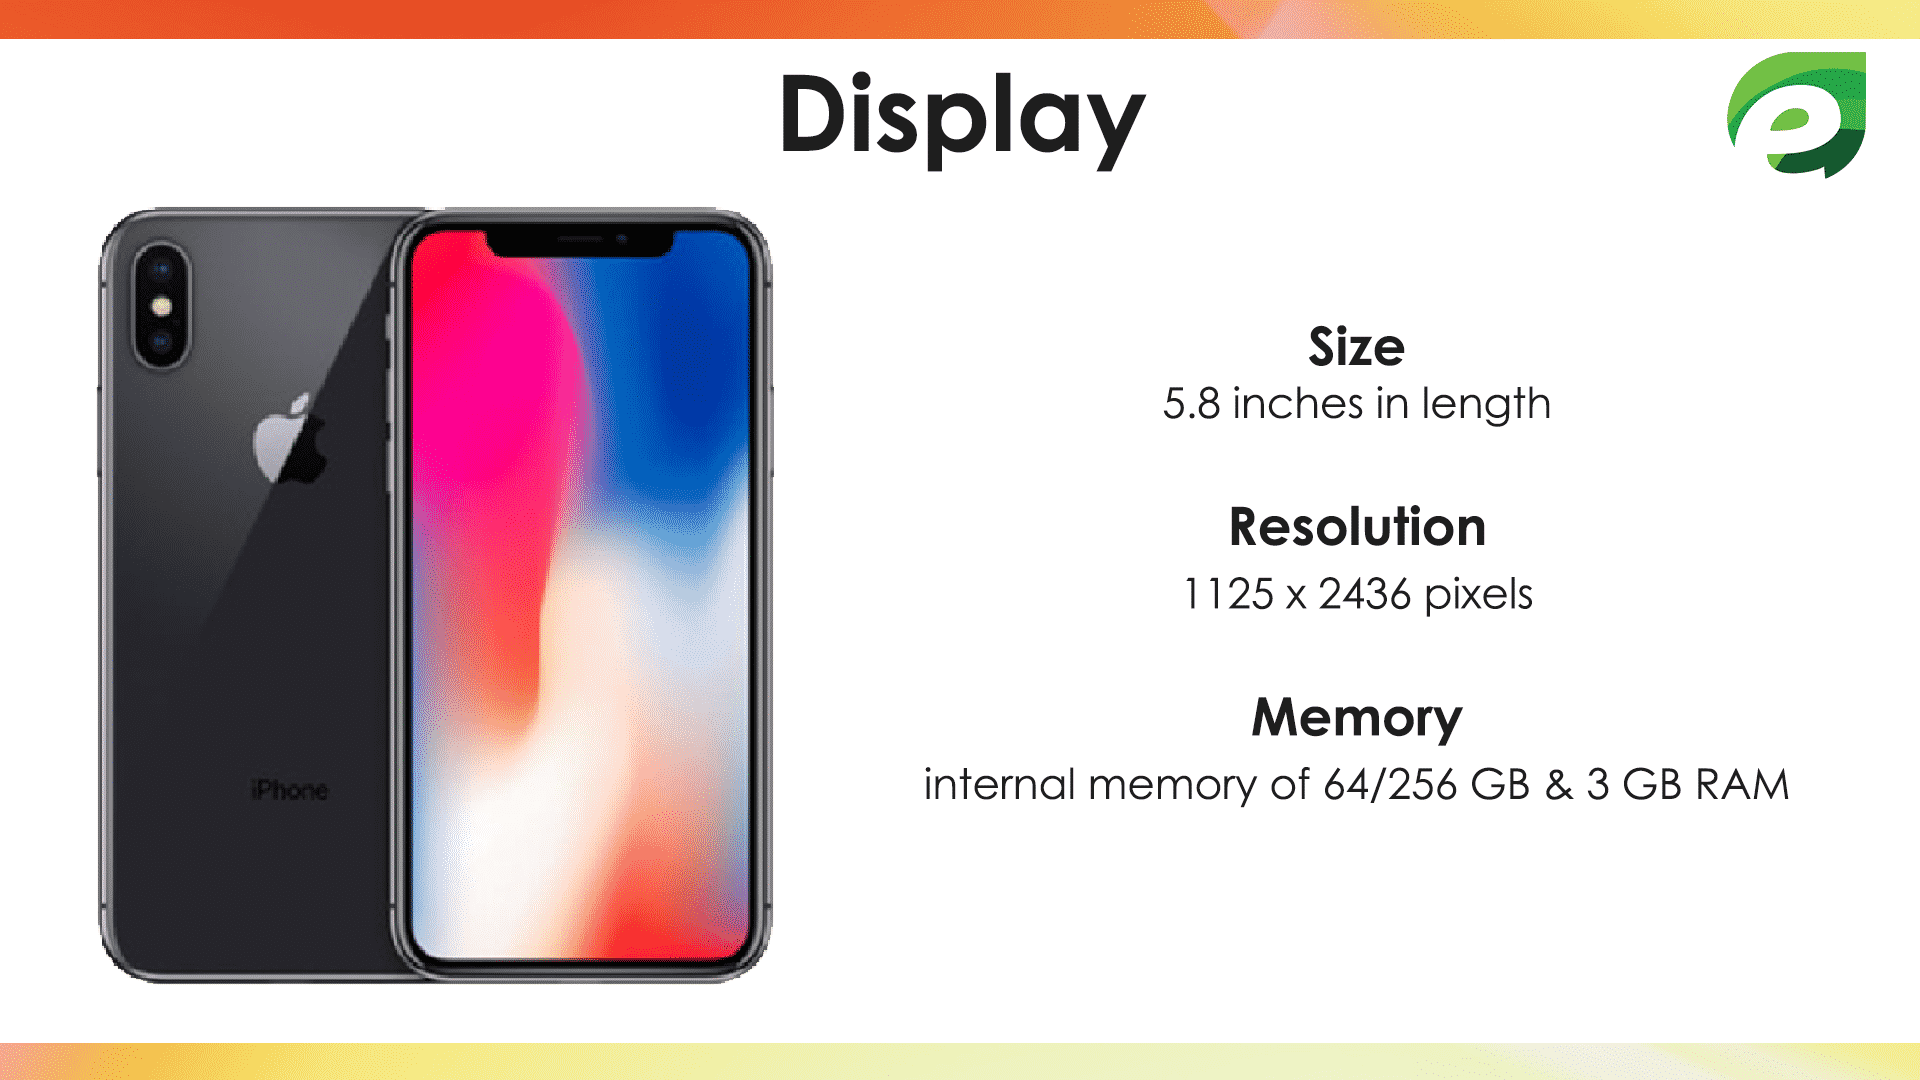 iphone x- Display